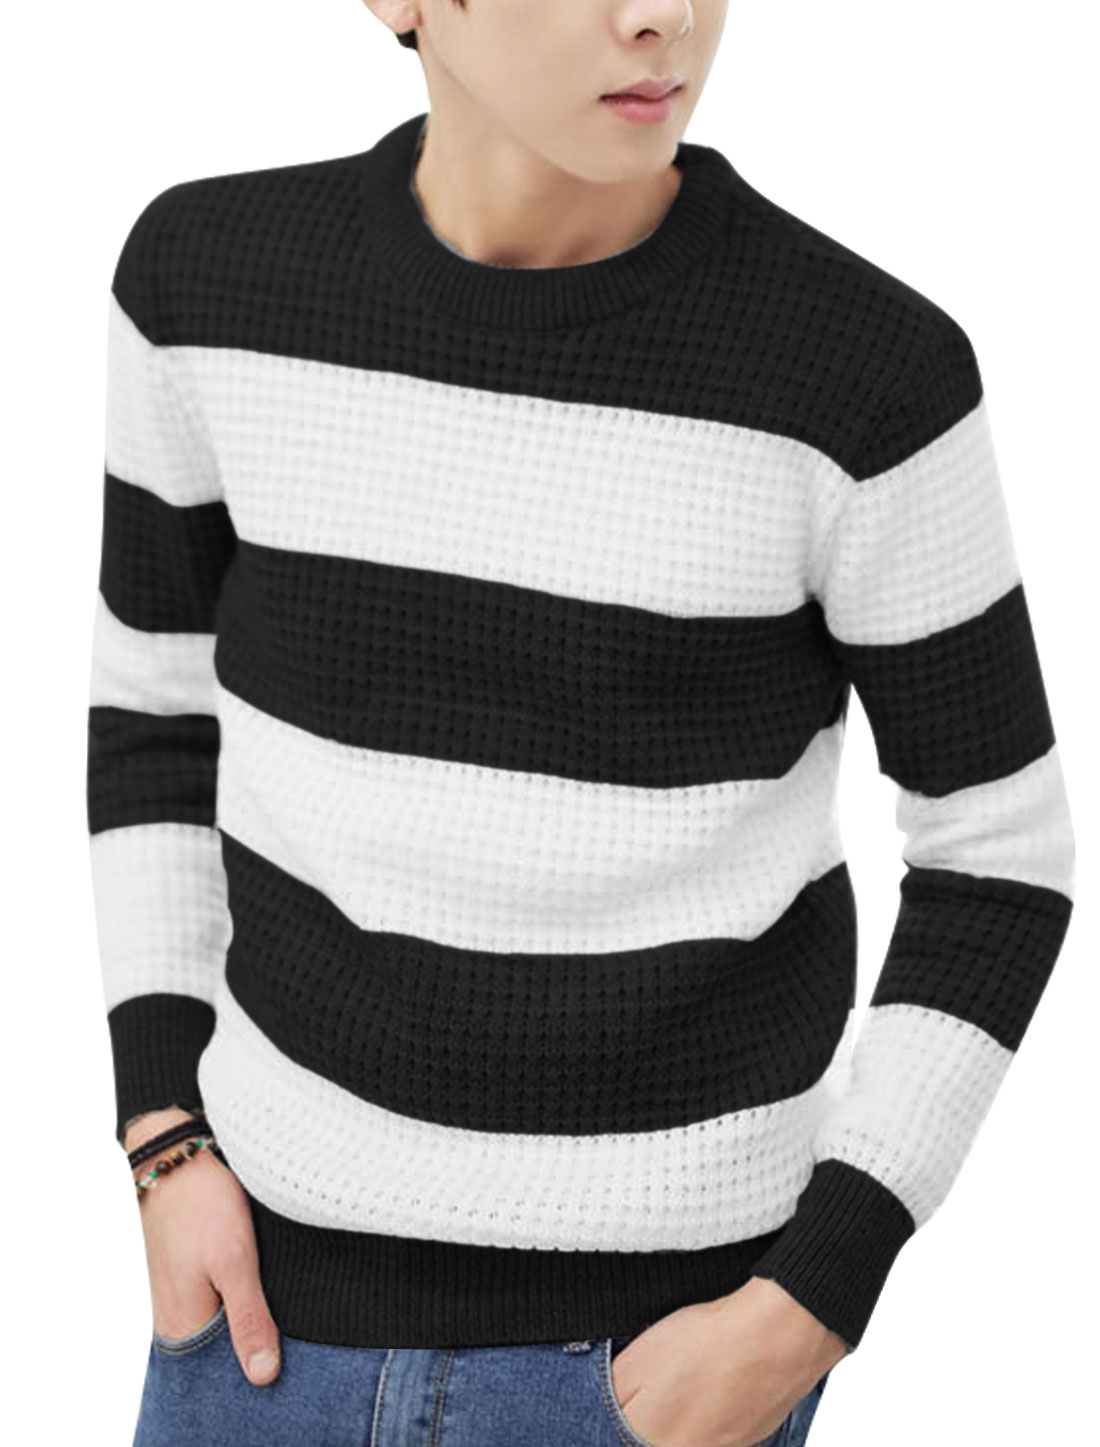 Stripes Pullover Long Sleeves Casual Black White Sweater for Man M